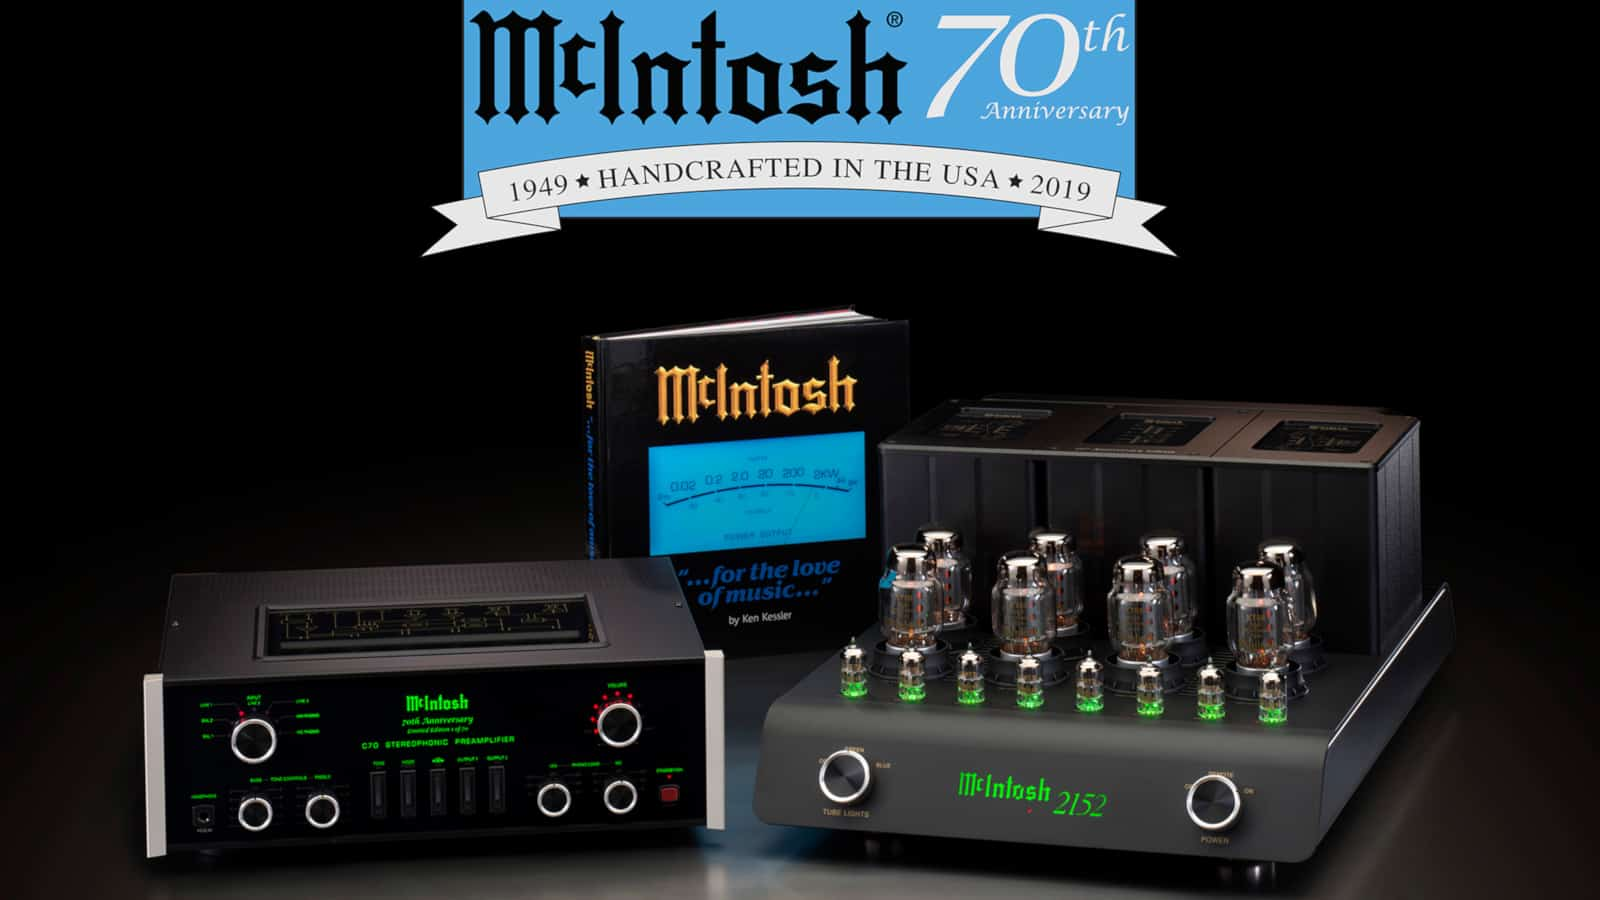 mcintosh-70th-anniversay-system